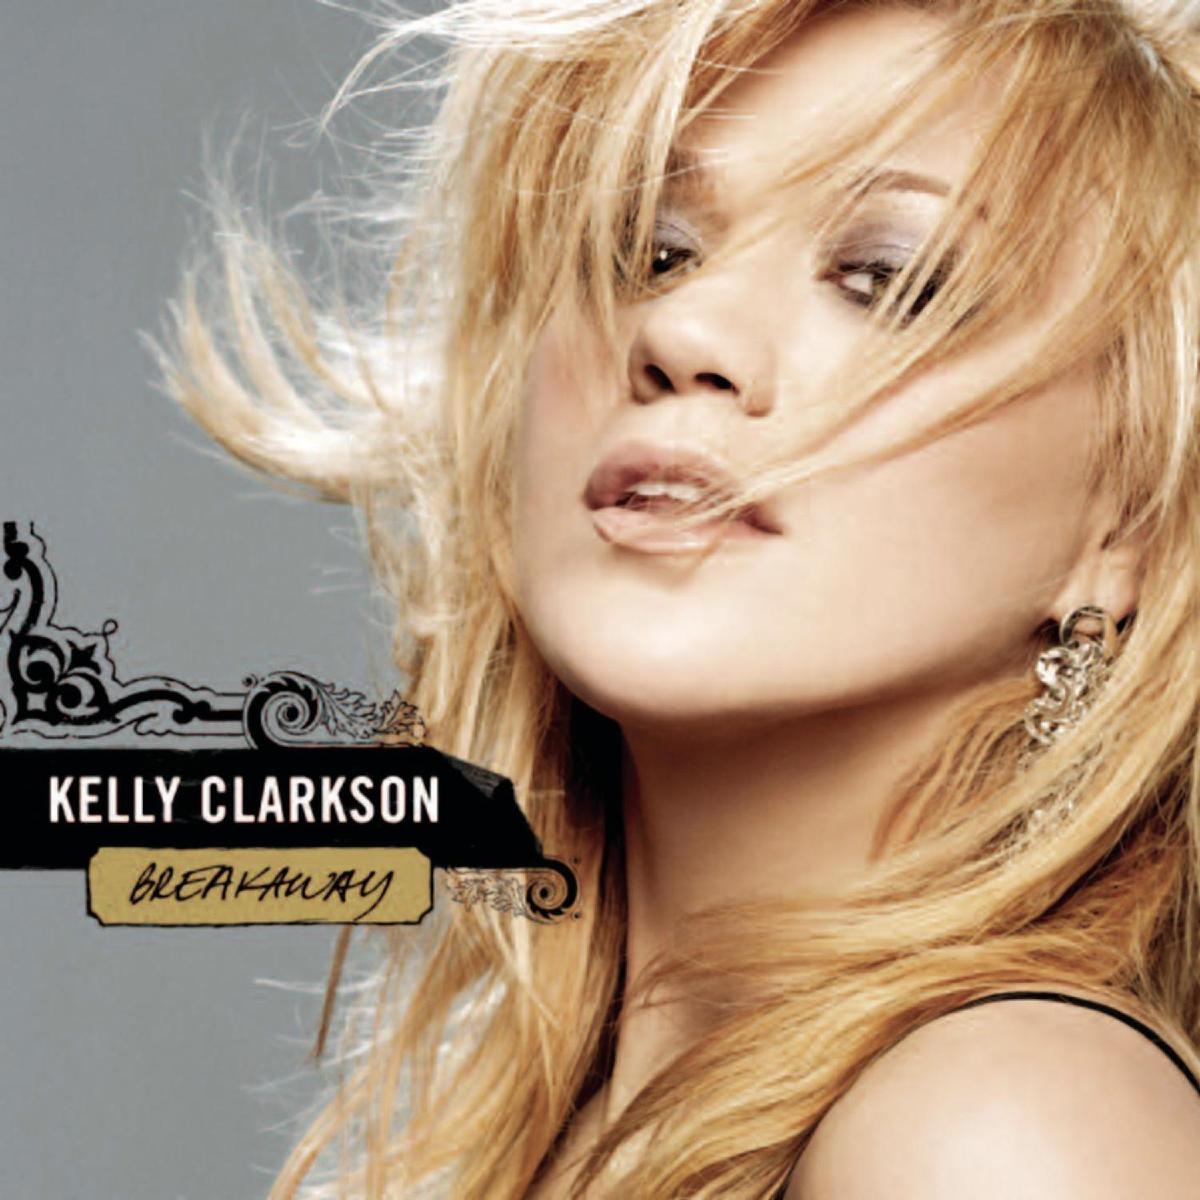 post modern thought in because of you by kelly clarkson essay Reality television do more harm media essay does reality television do more harm than good the world phenomenal talents in the form of kelly clarkson.